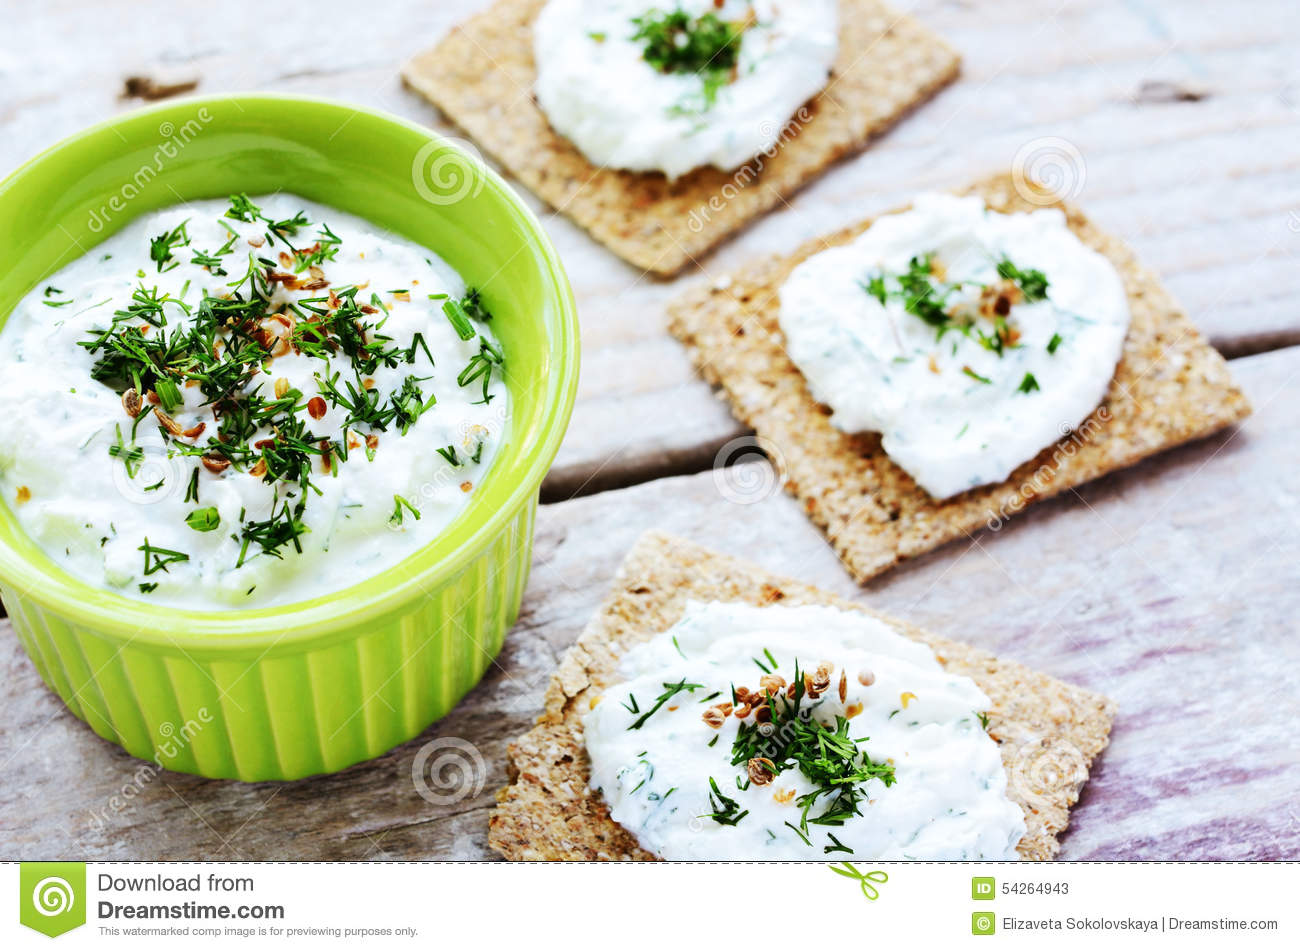 Sensational Homemade Cottage Cheese Spread And Rye Loaves Sandwiches Home Interior And Landscaping Analalmasignezvosmurscom